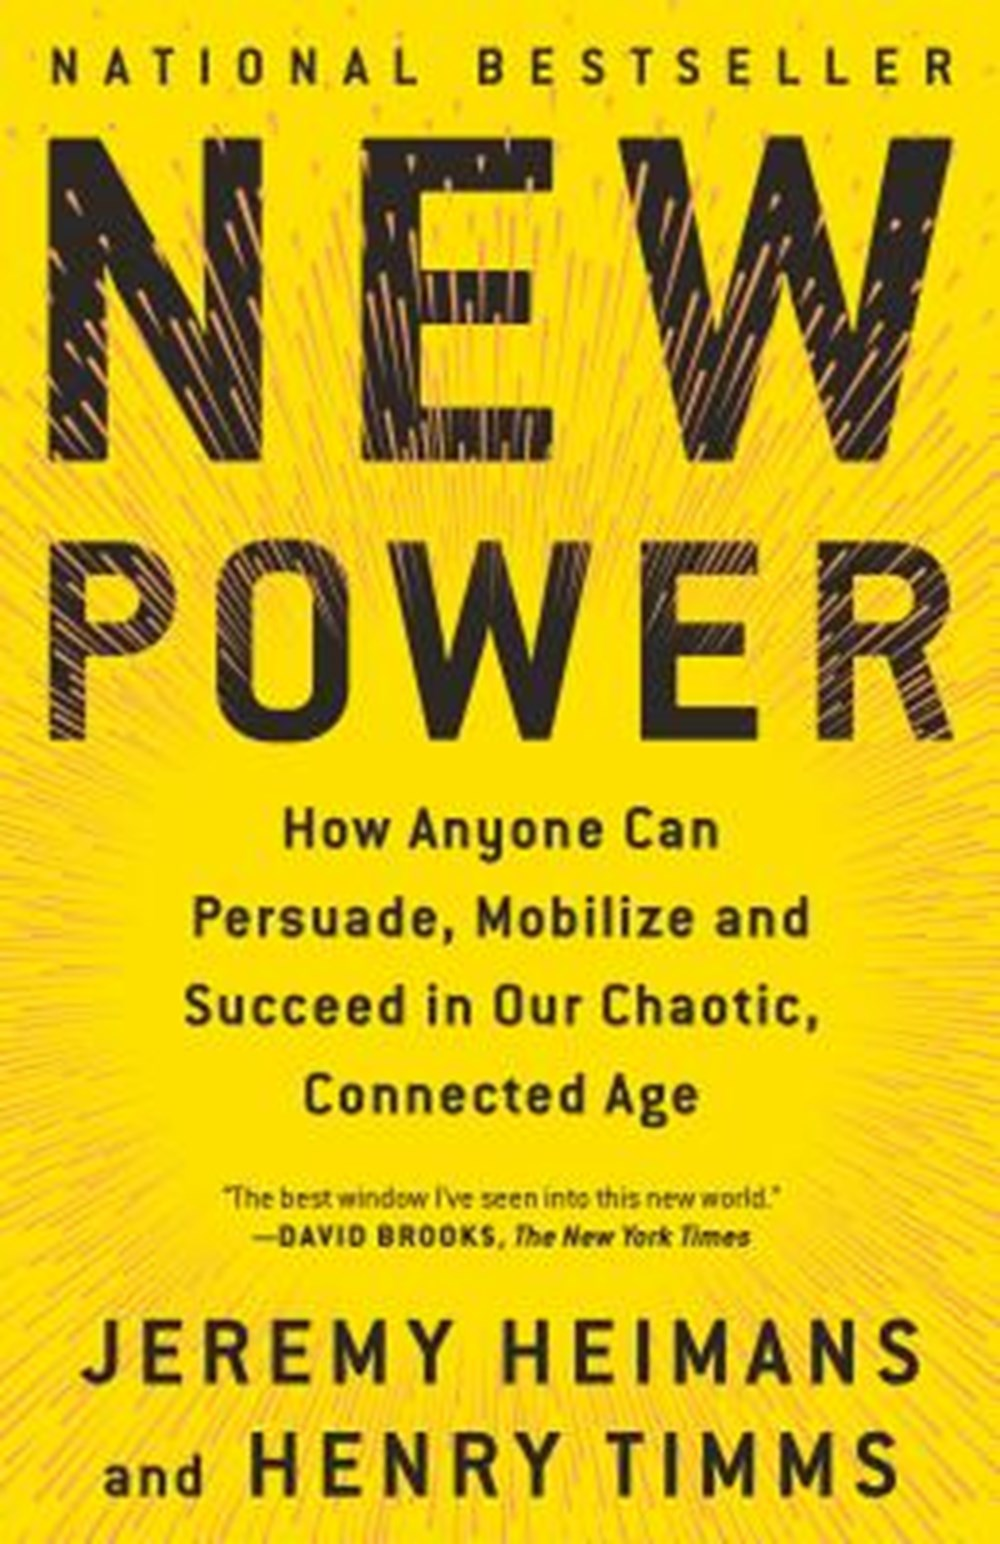 New Power How Anyone Can Persuade, Mobilize, and Succeed in Our Chaotic, Connected Age